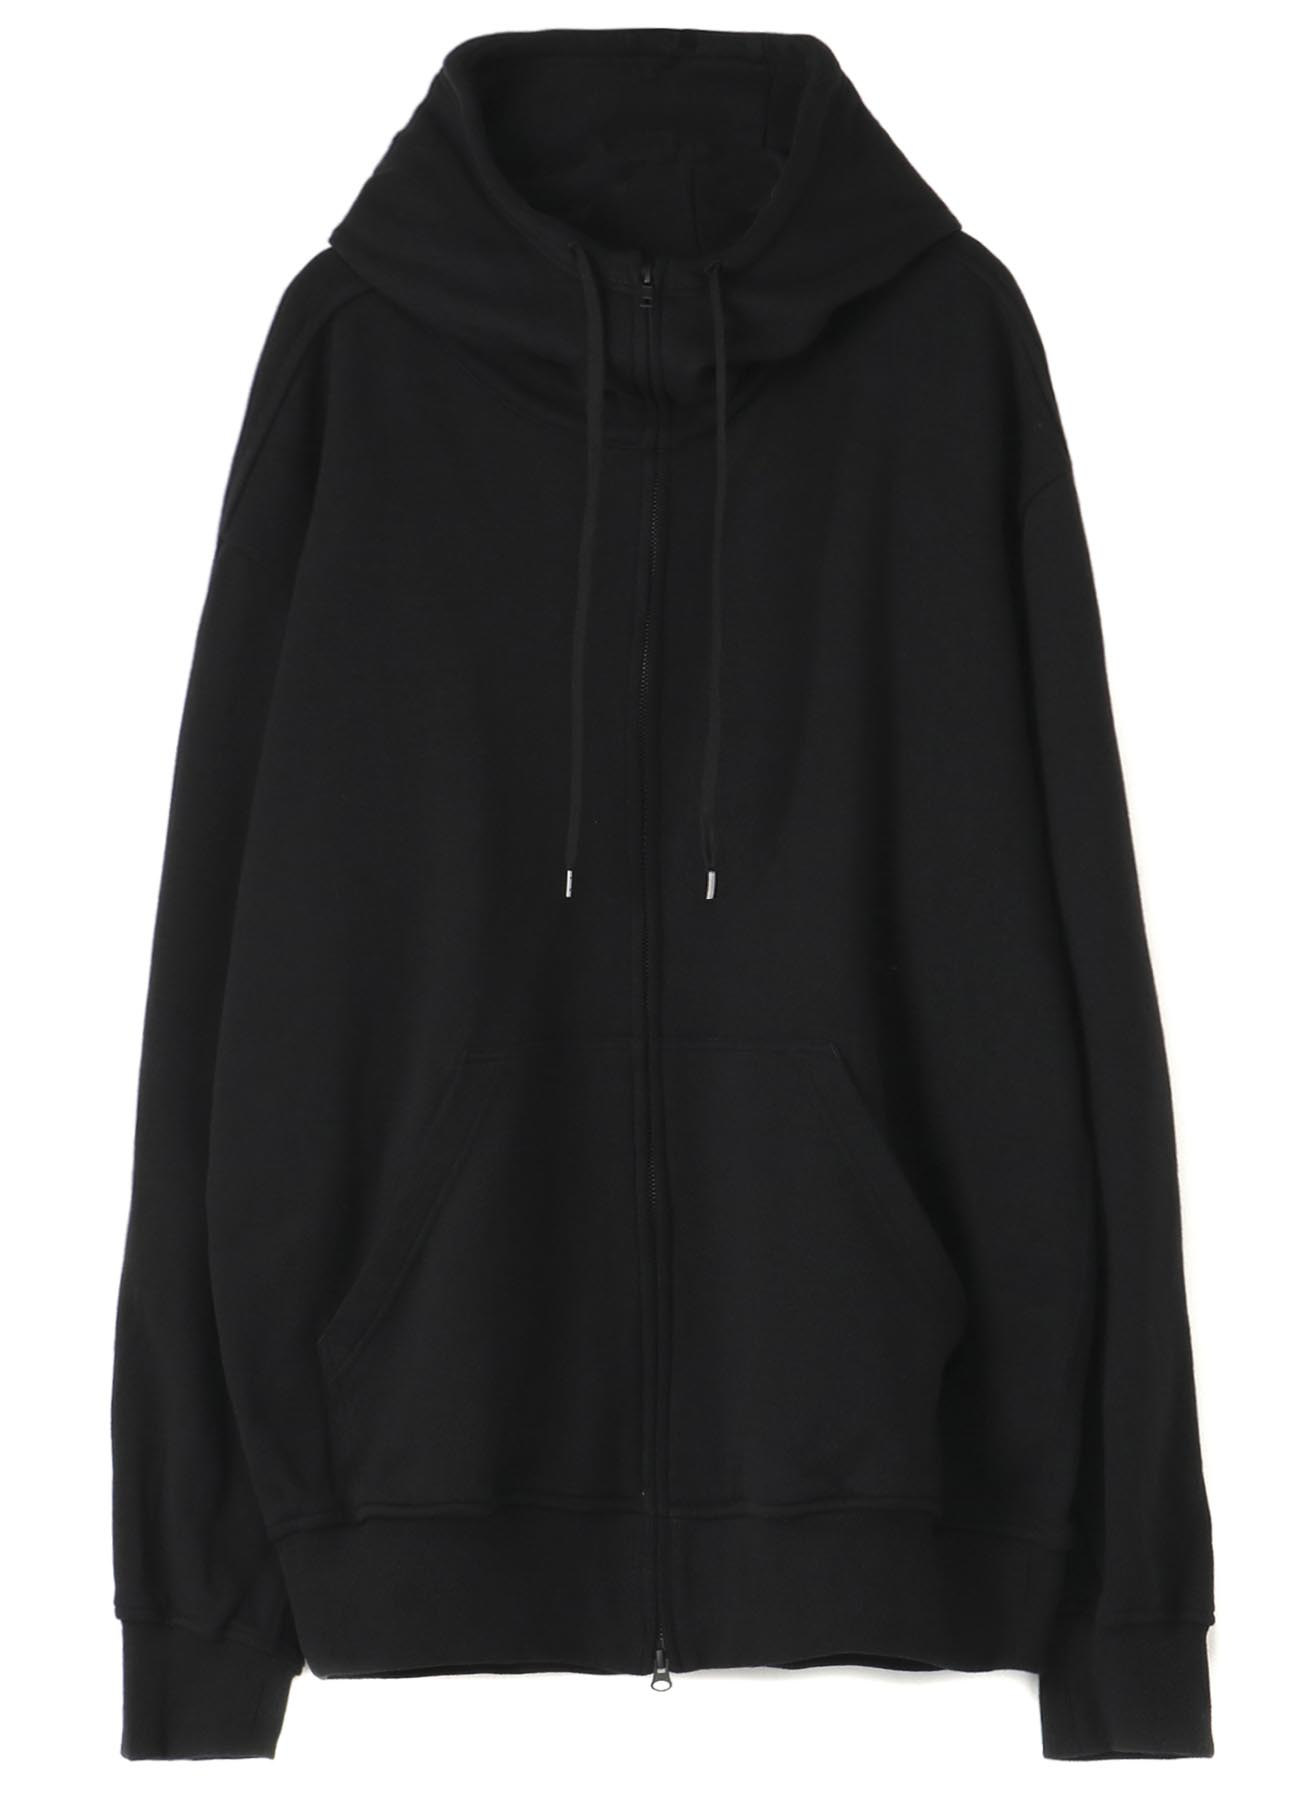 French Terry Stitch Work 「NO FUTURE」Zipper Hoodie